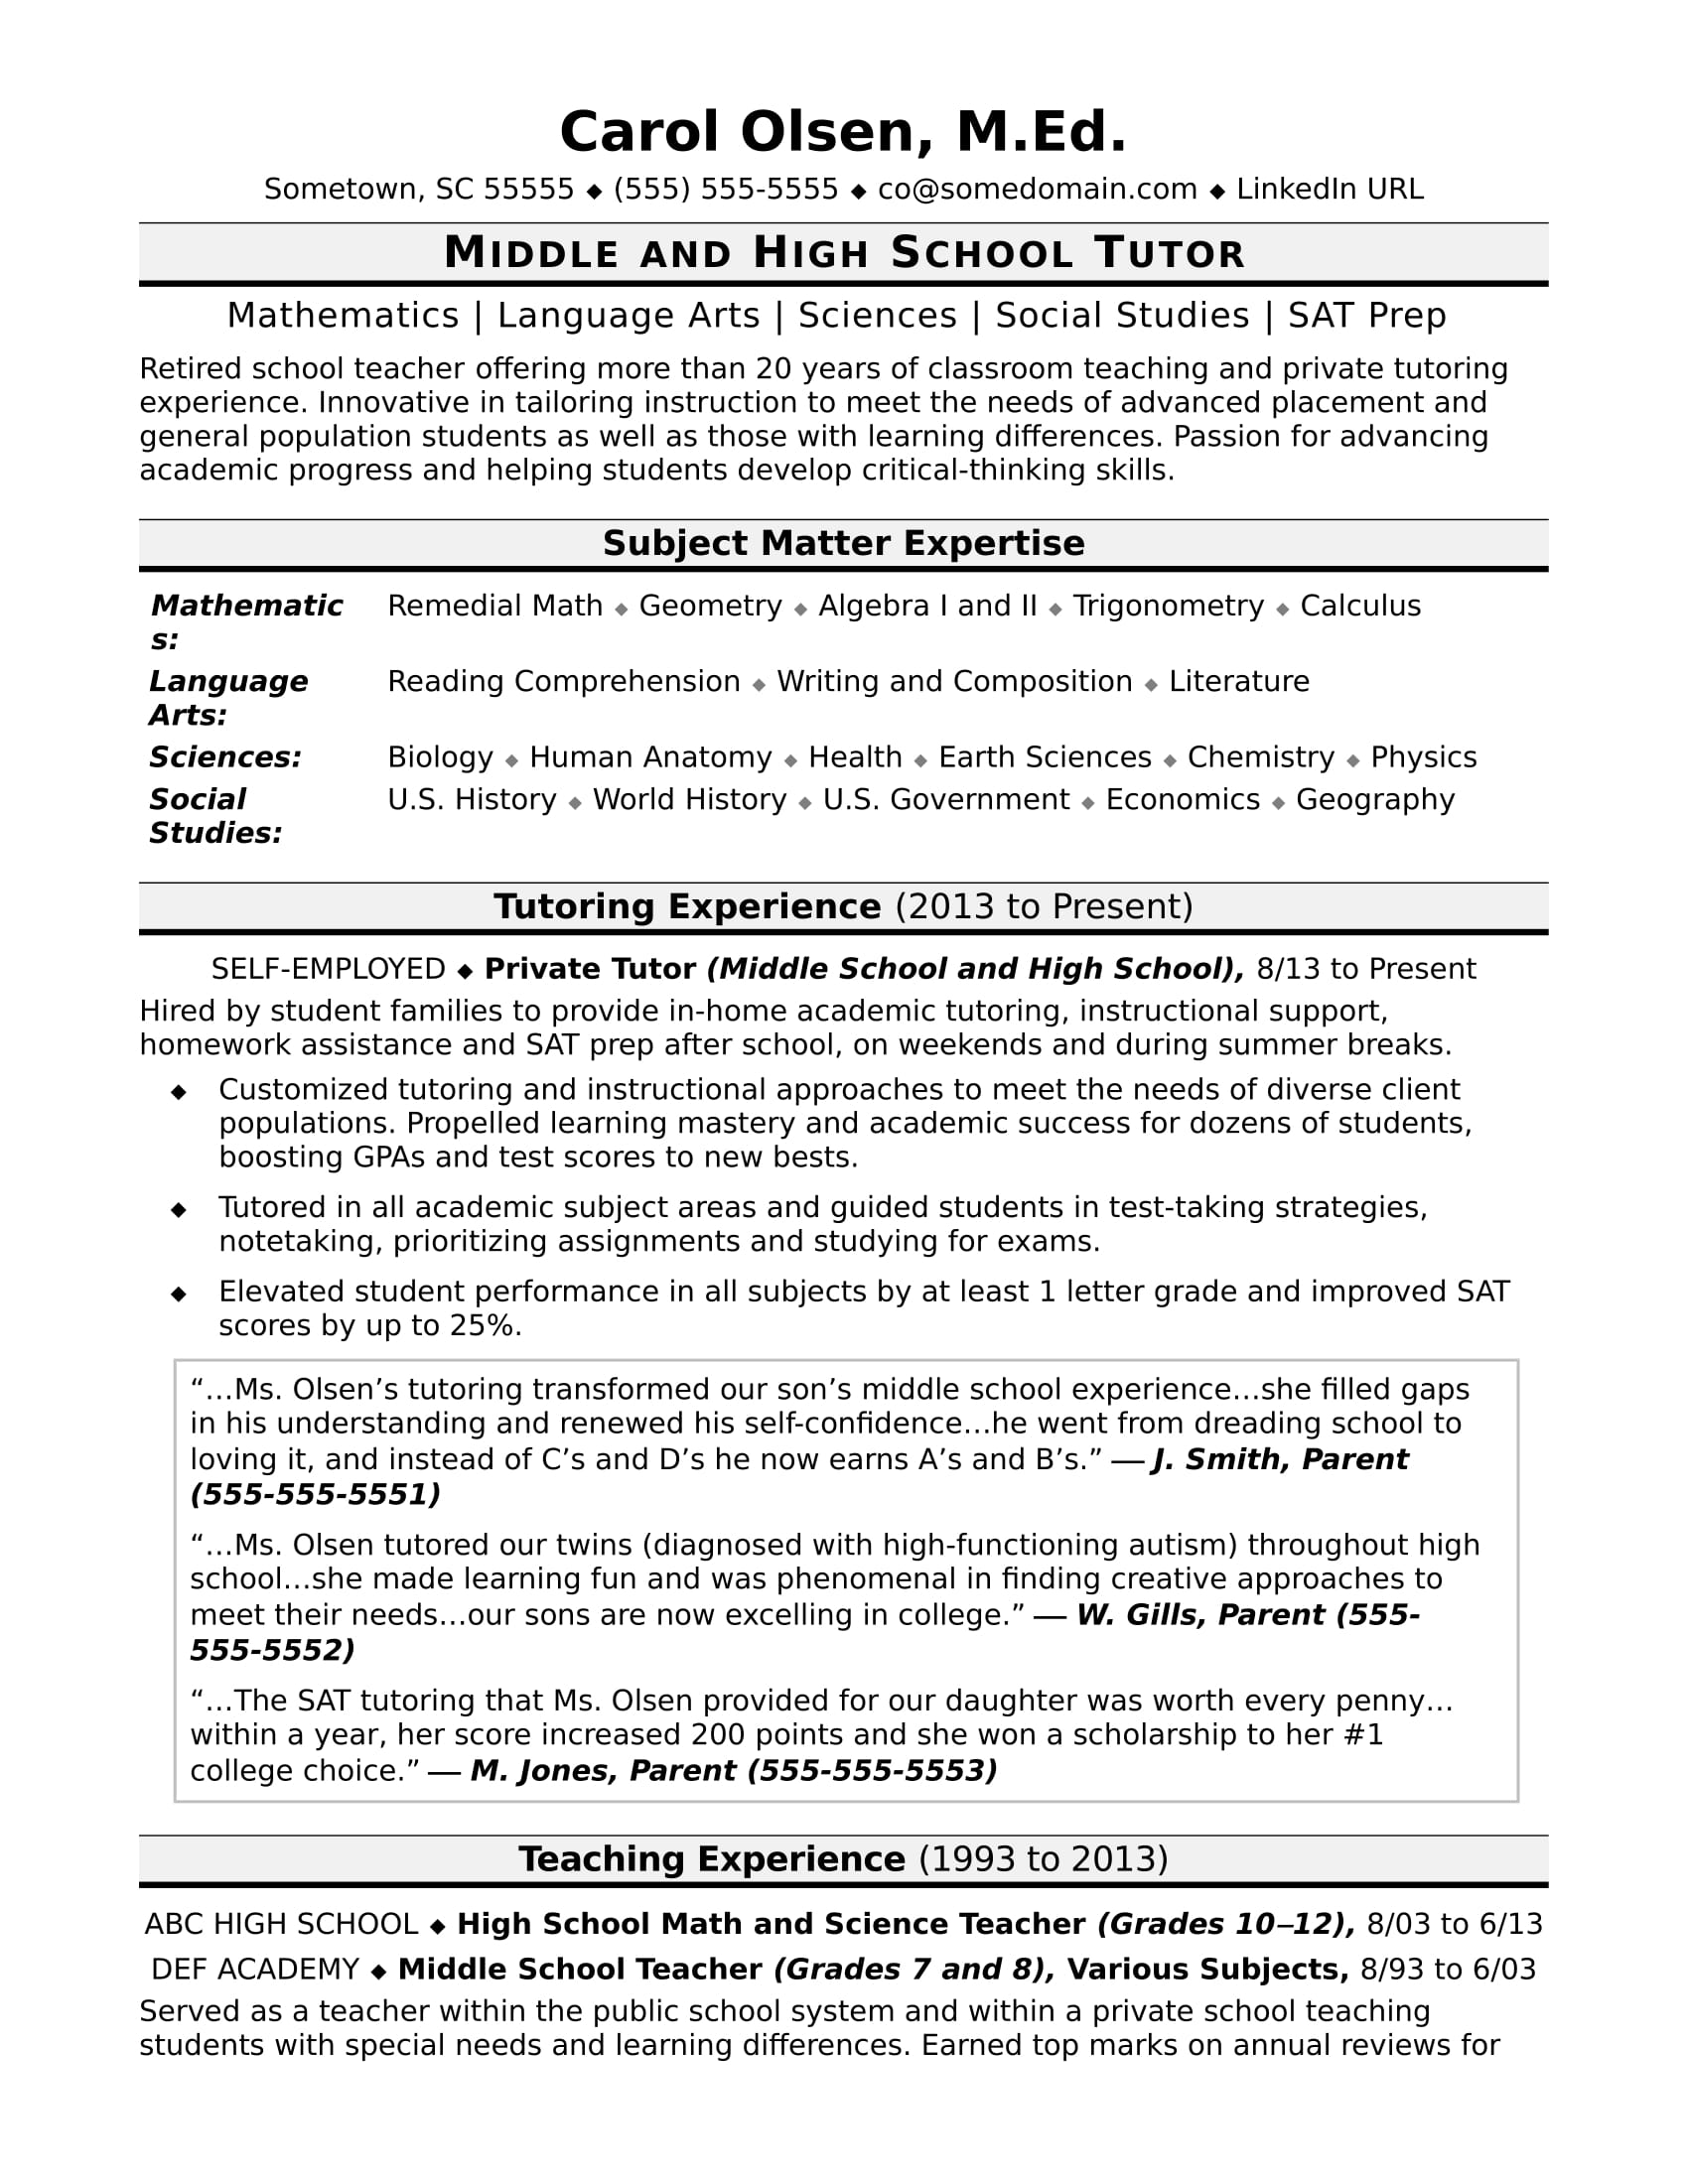 Superb Tutor Resume Sample Throughout Private Tutor Resume